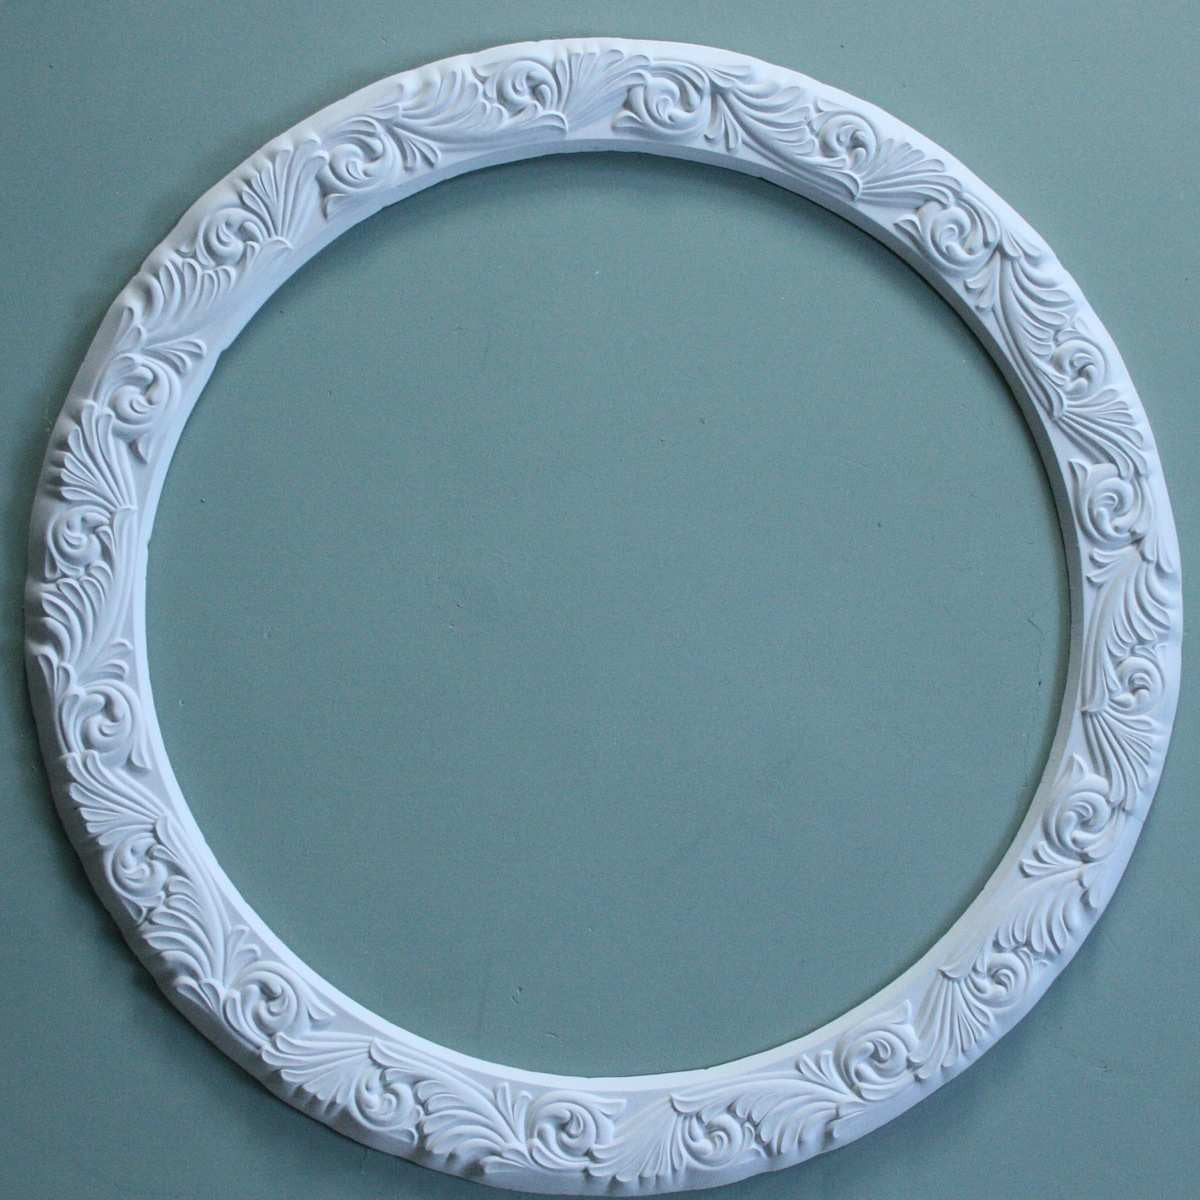 Large Plaster Ring Ceiling Rose 905mm dia. LPR042 - PlasterCeilingRoses.com